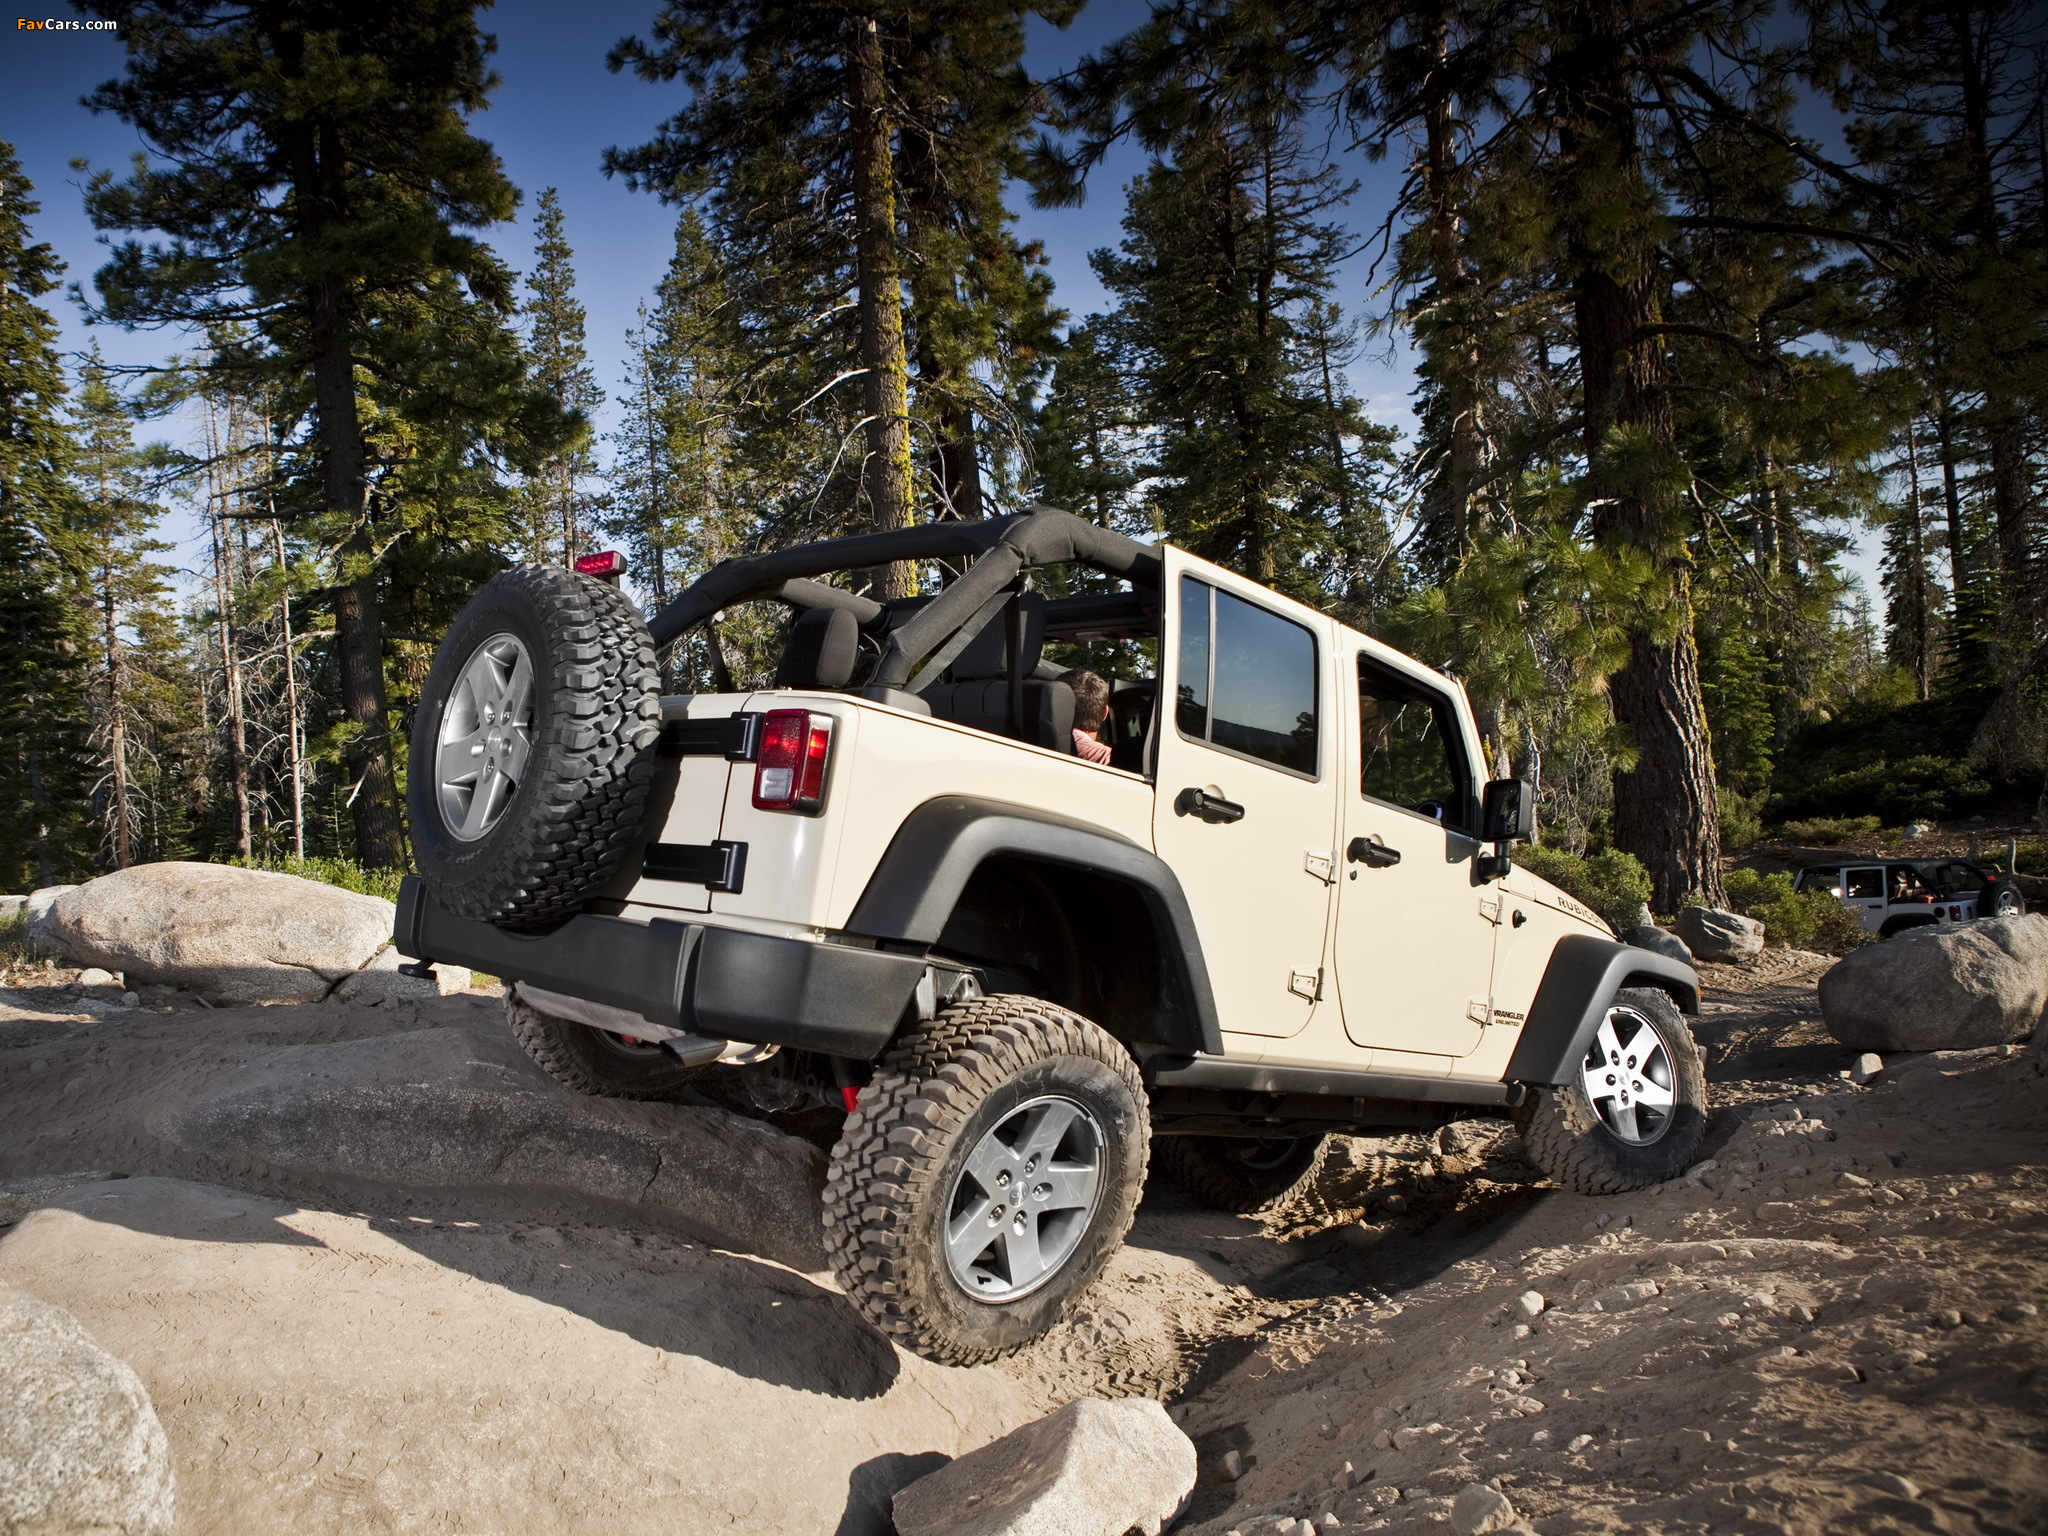 Jeep Wrangler Unlimited Rubicon (JK) 2010 pictures (2048 x 1536)